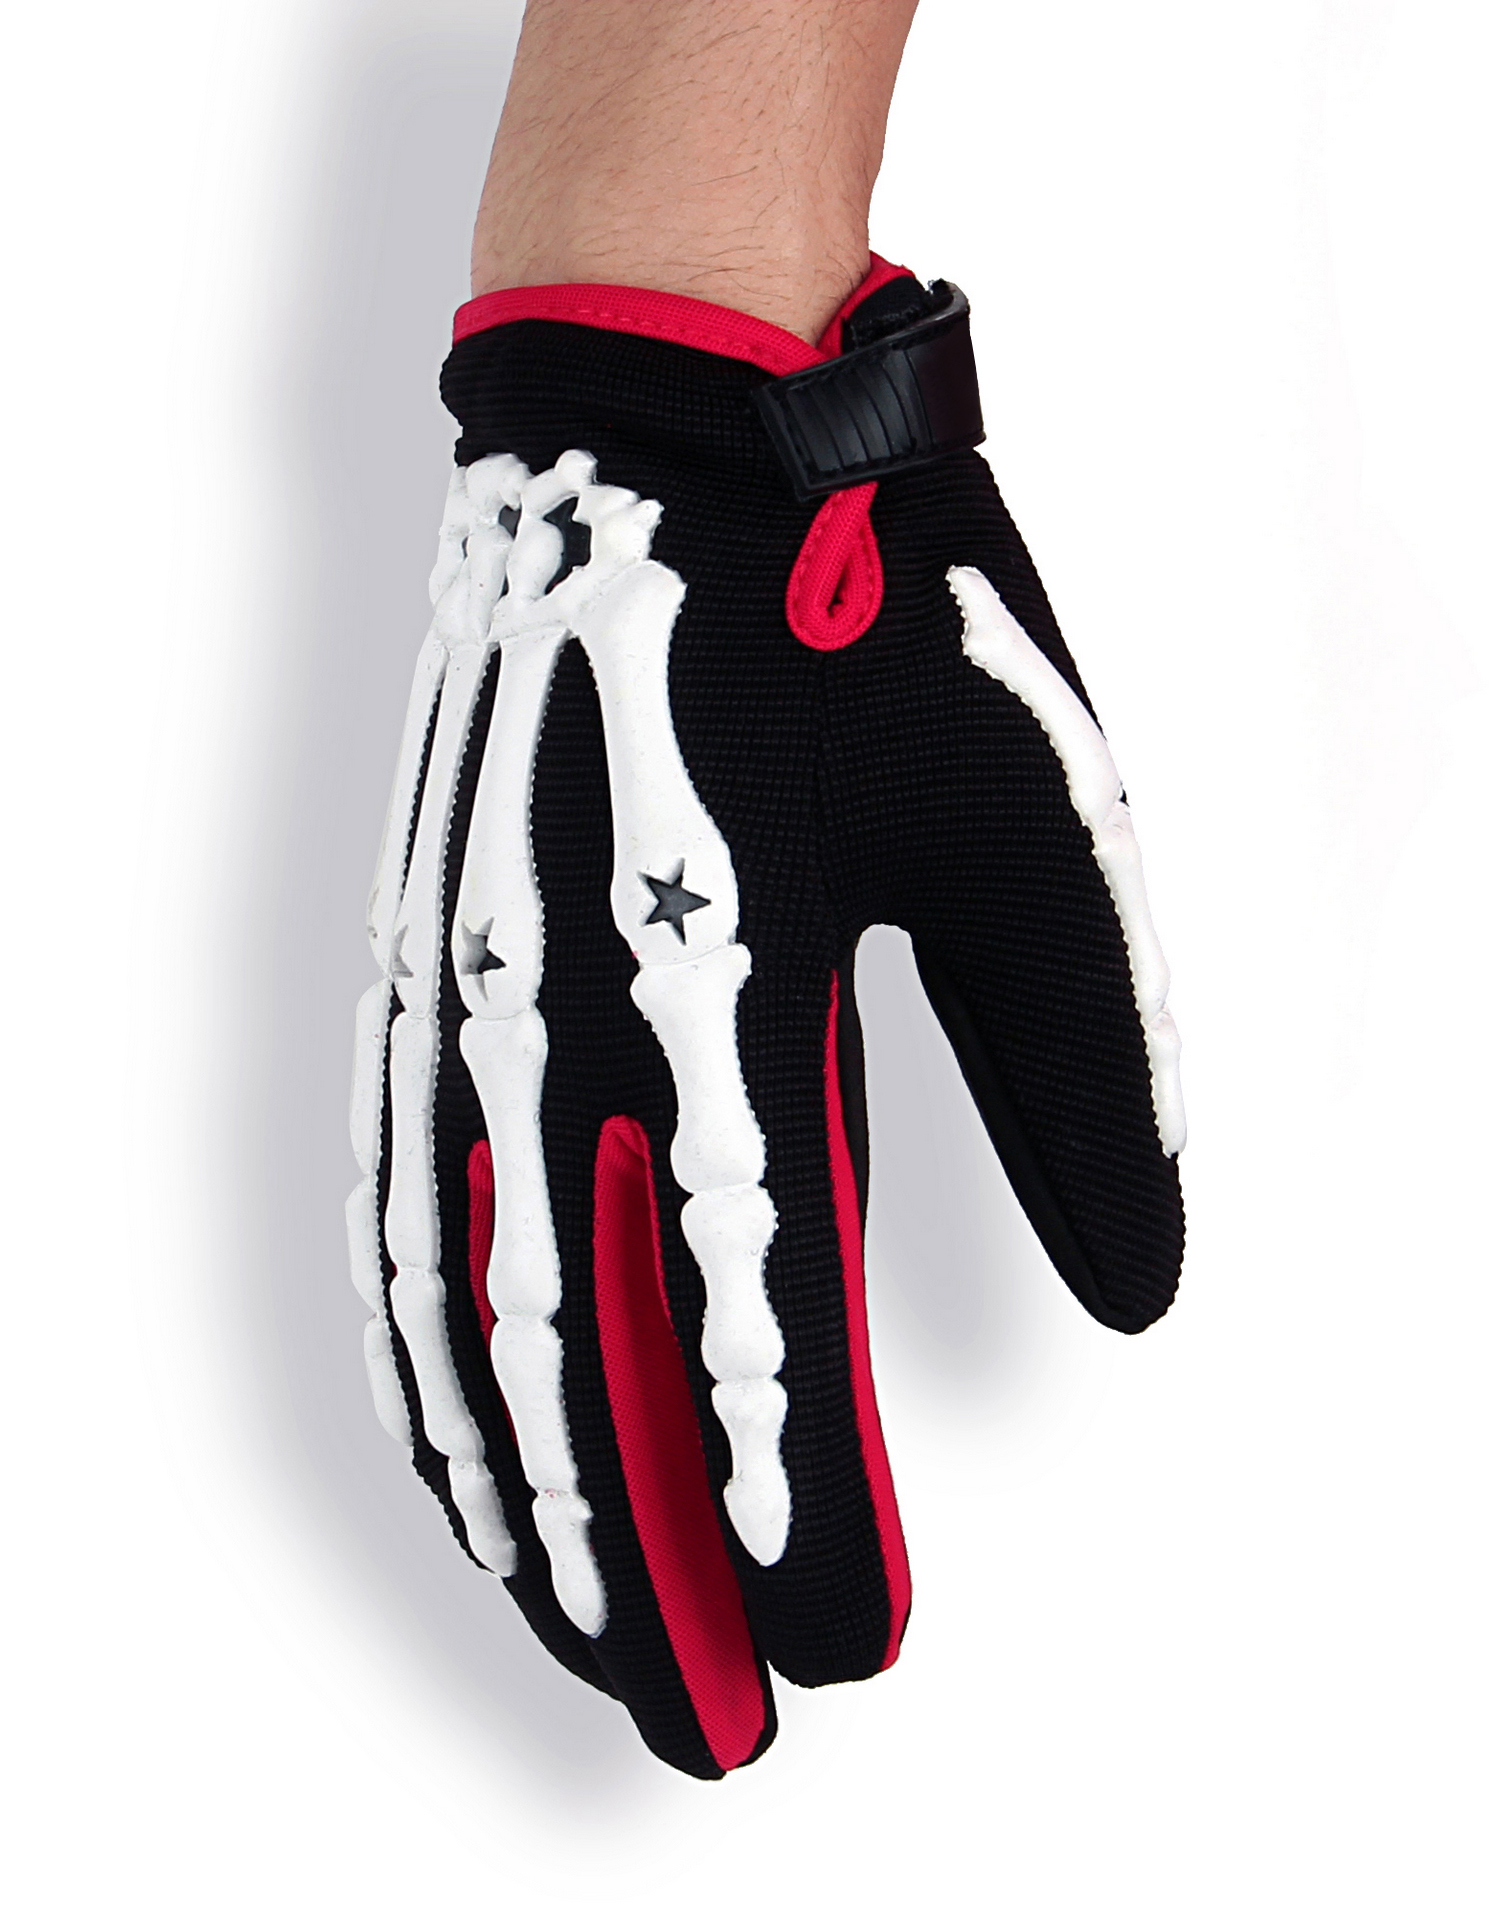 Motorcycle gloves in nepal - Motorcycle Motocross Cycling Dirt Bike Full Finger Gloves